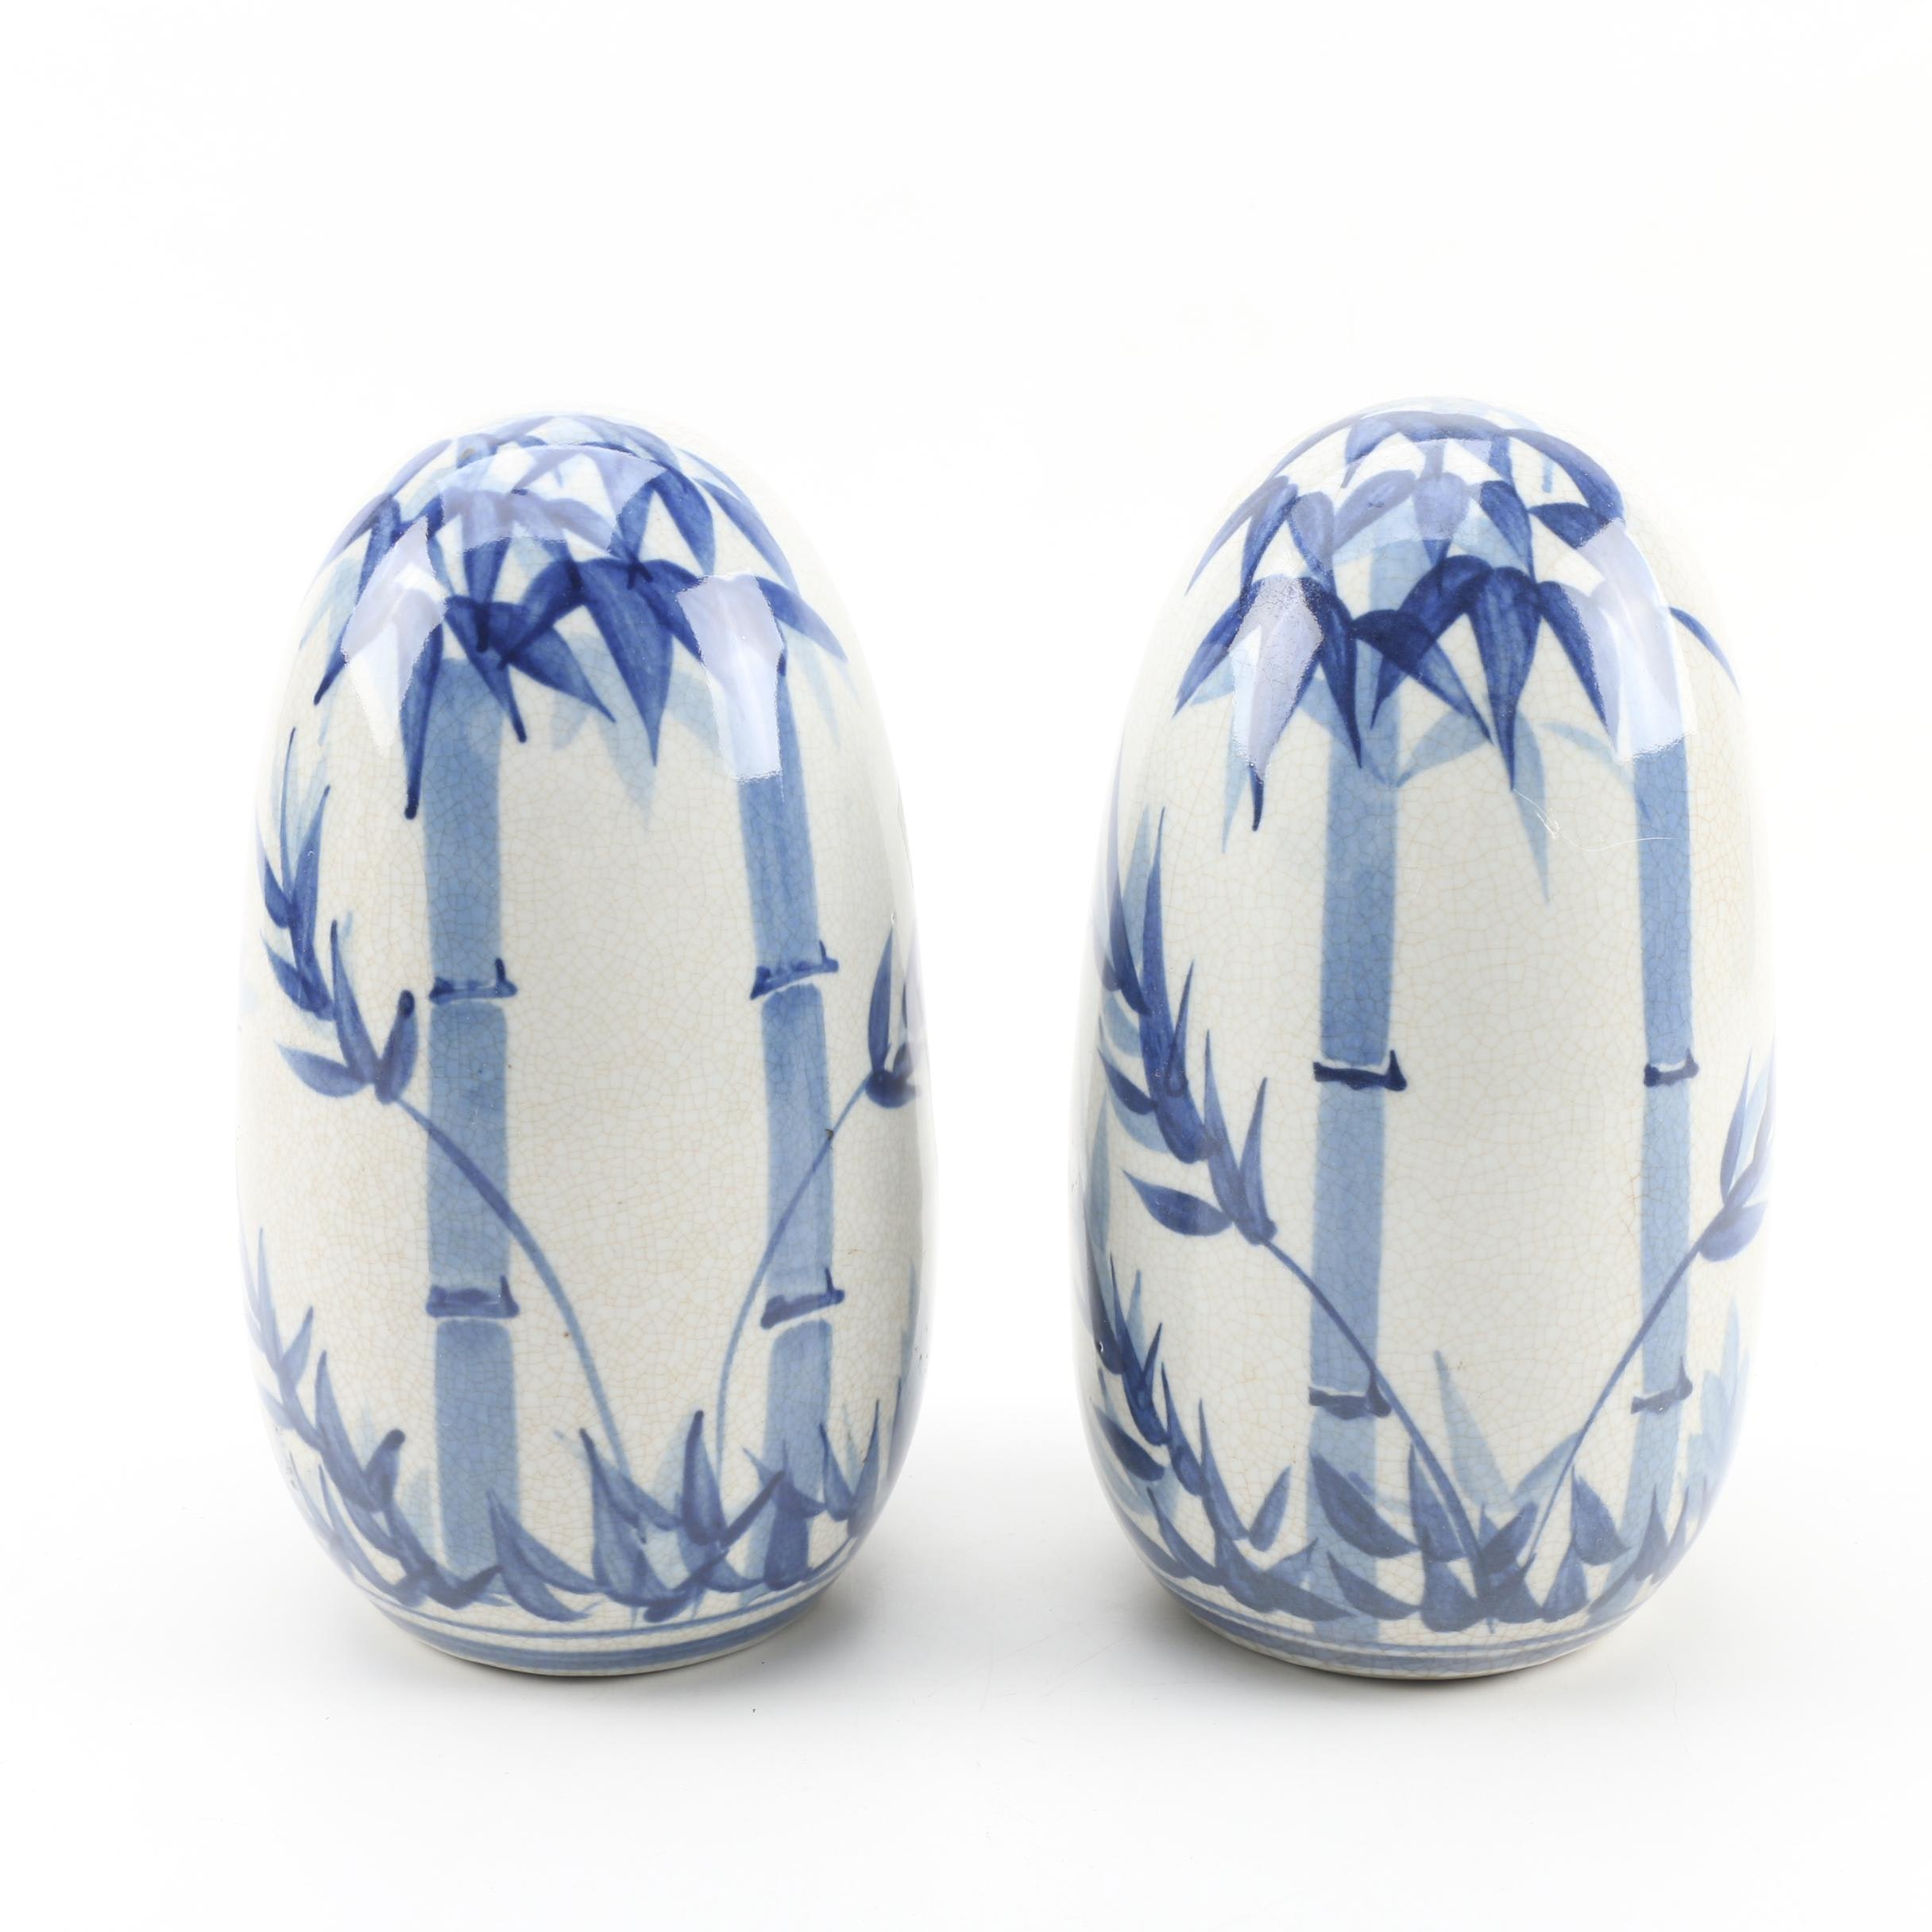 Chinese Blue and White Porcelain Bookends with Bamboo Motif